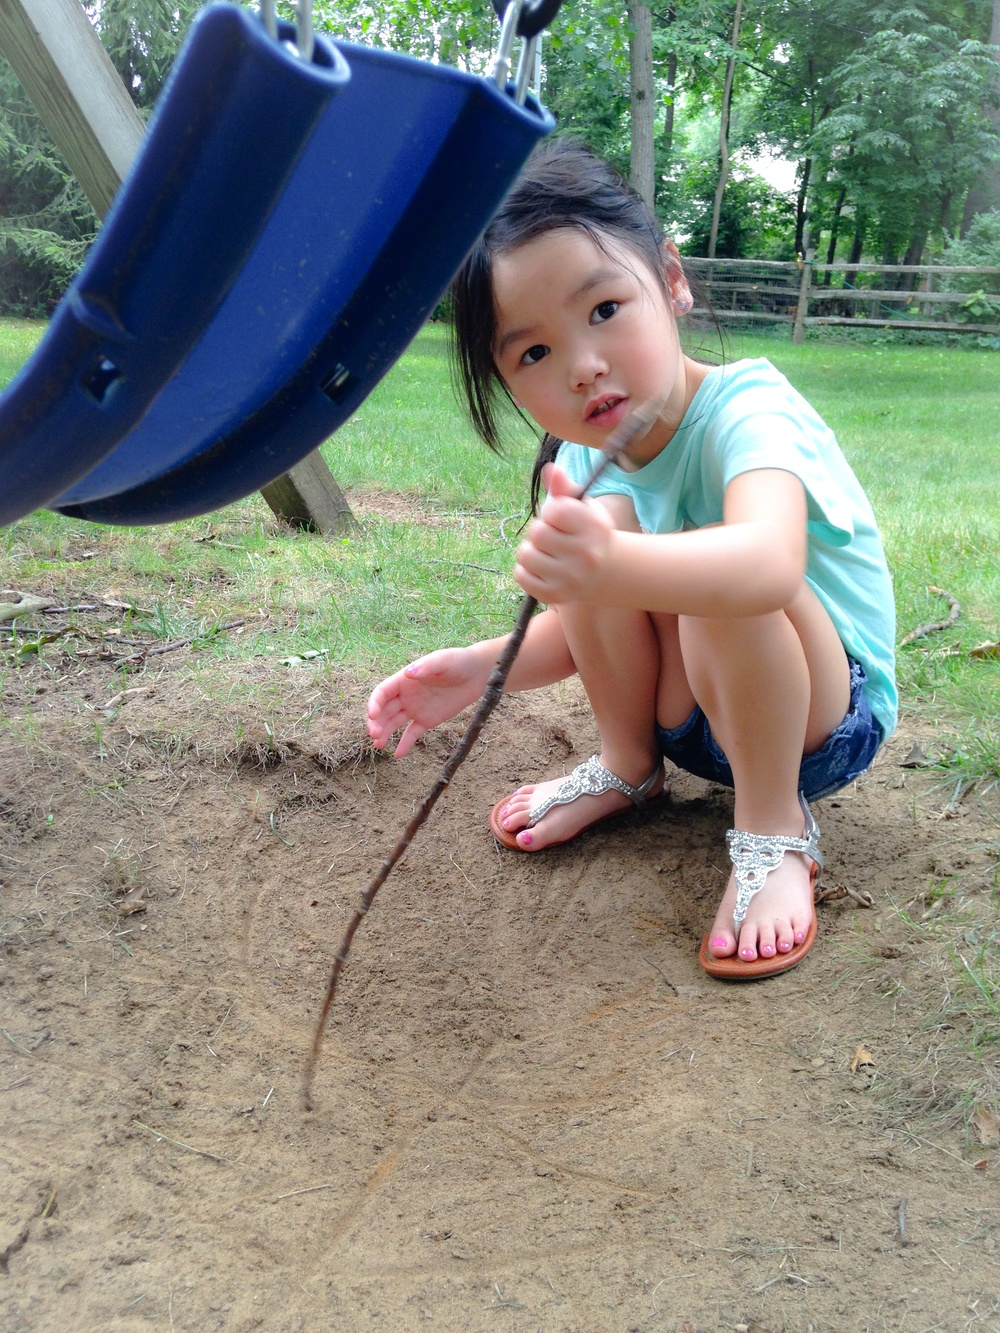 Writing letters with a stick and dirt